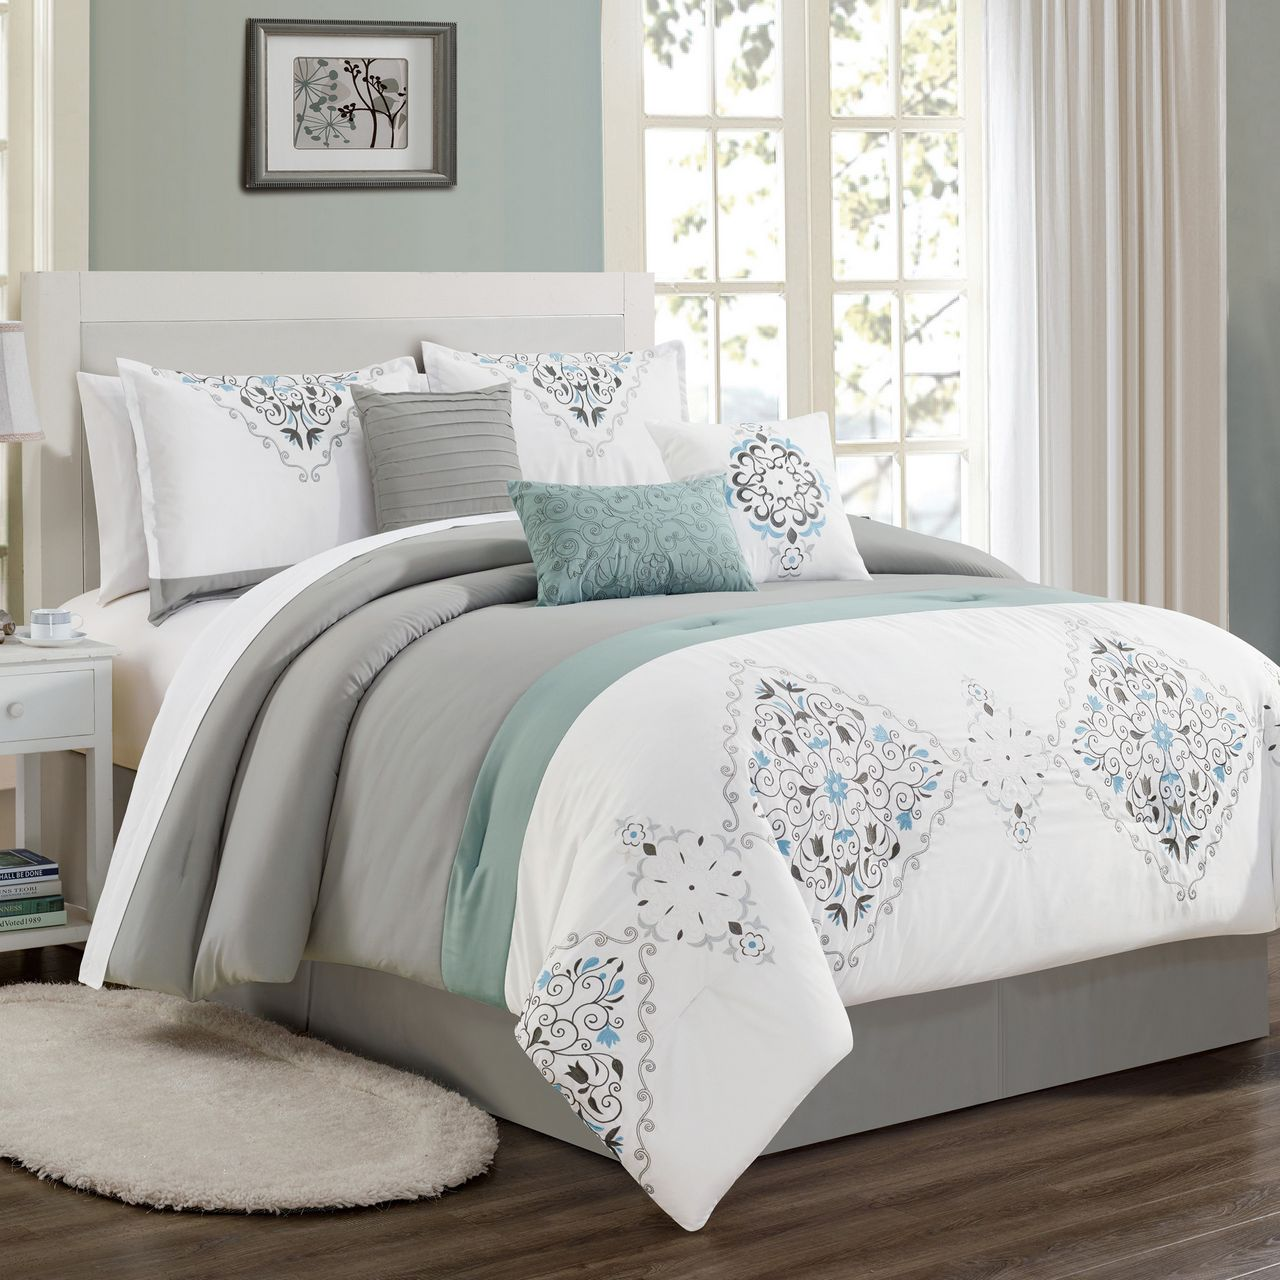 White Gray And Blue Bedroom For Teen: 11 Piece Even Gray/White/Blue Bed In A Bag Set